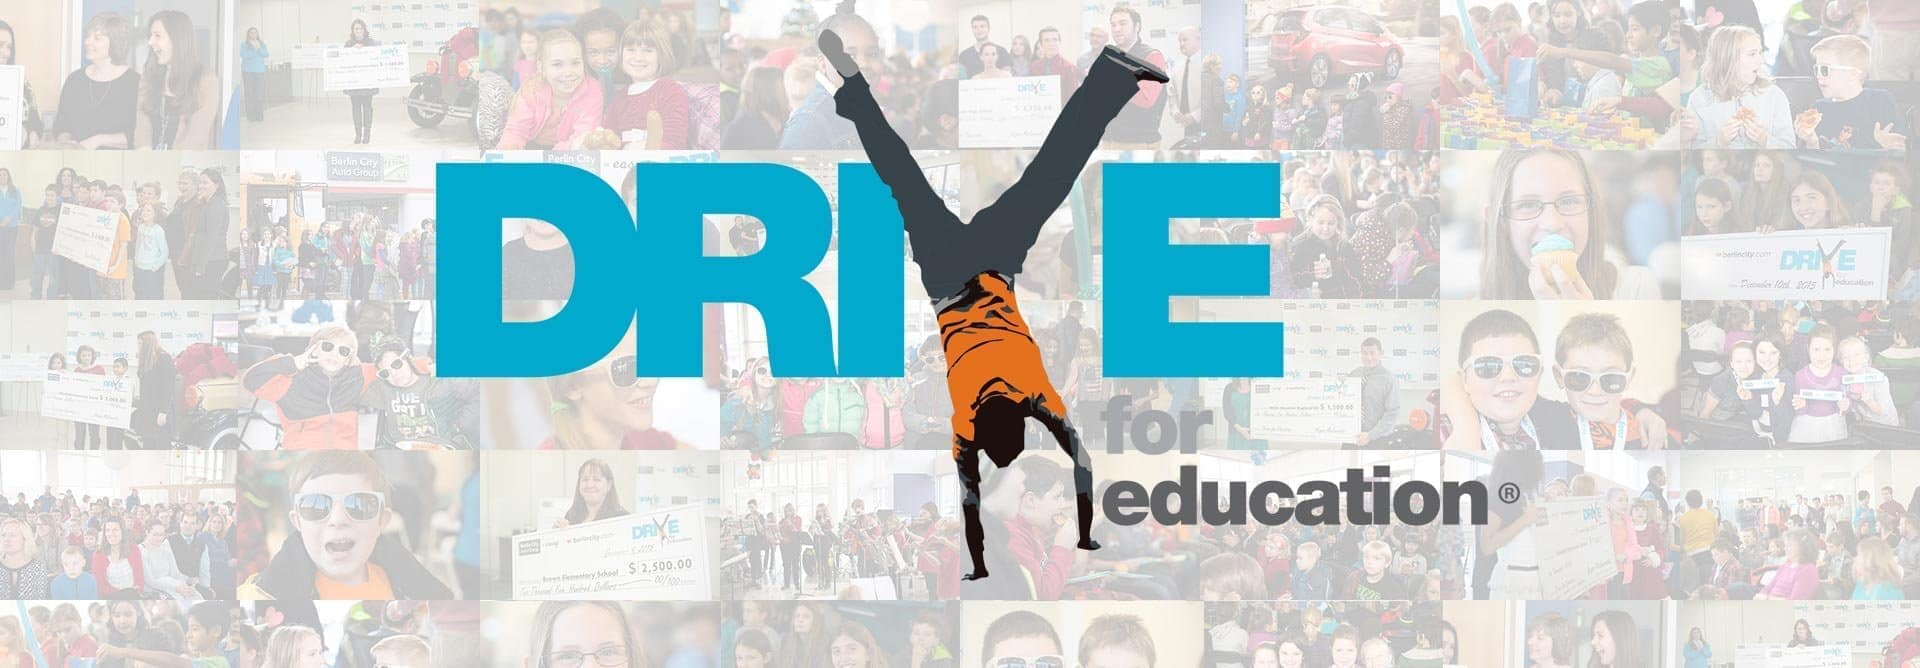 Drive for Education banner